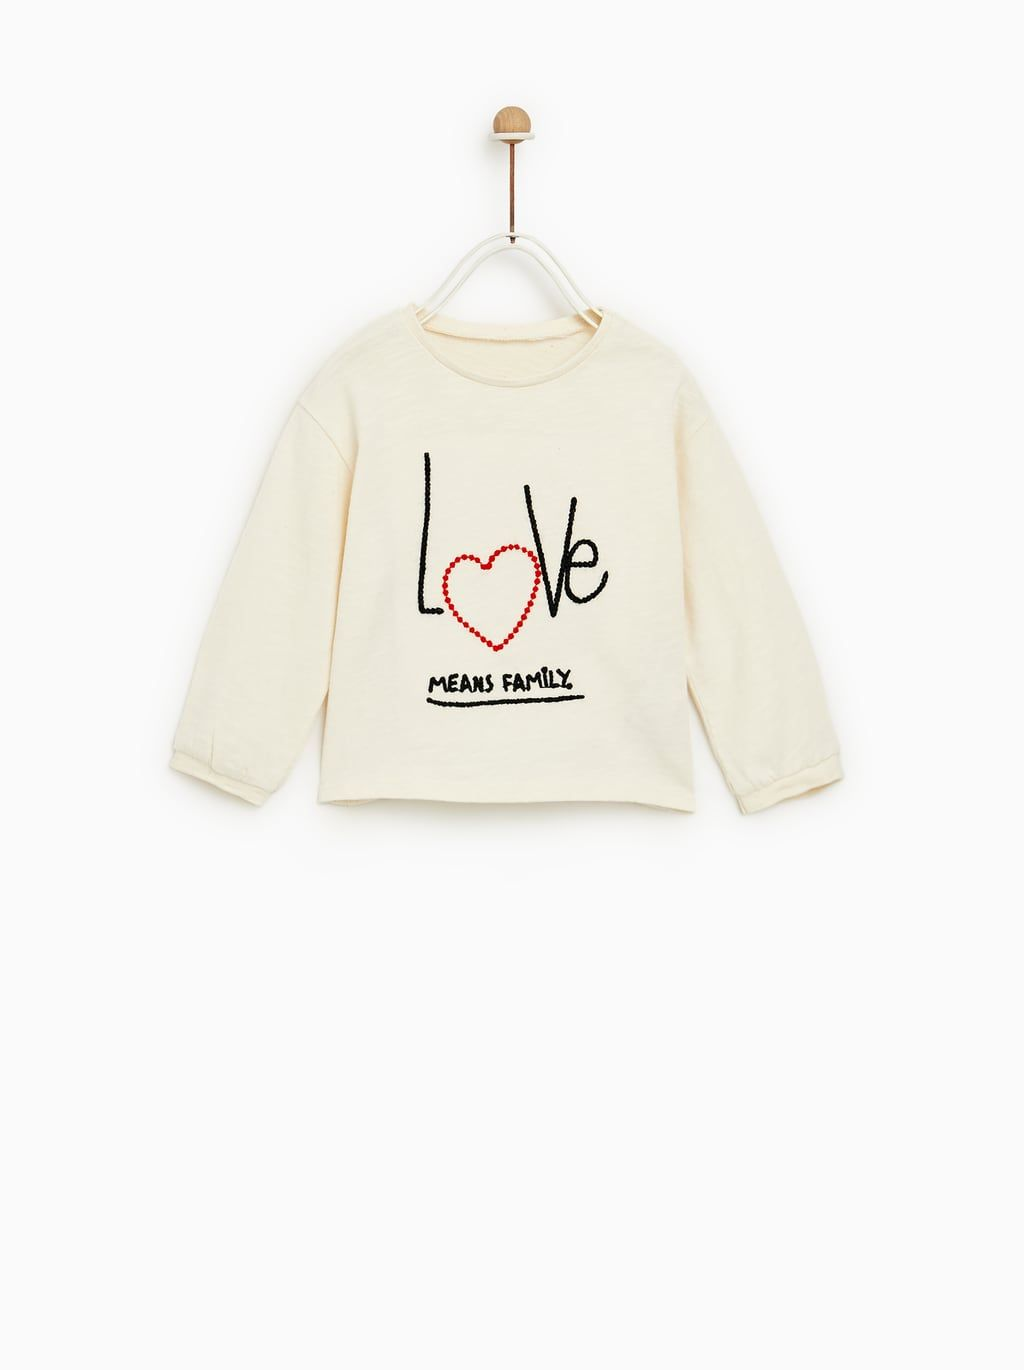 724585d5 Koszulka z napisem | Girl | Pinterest | Shirts, Zara kids and T shirt